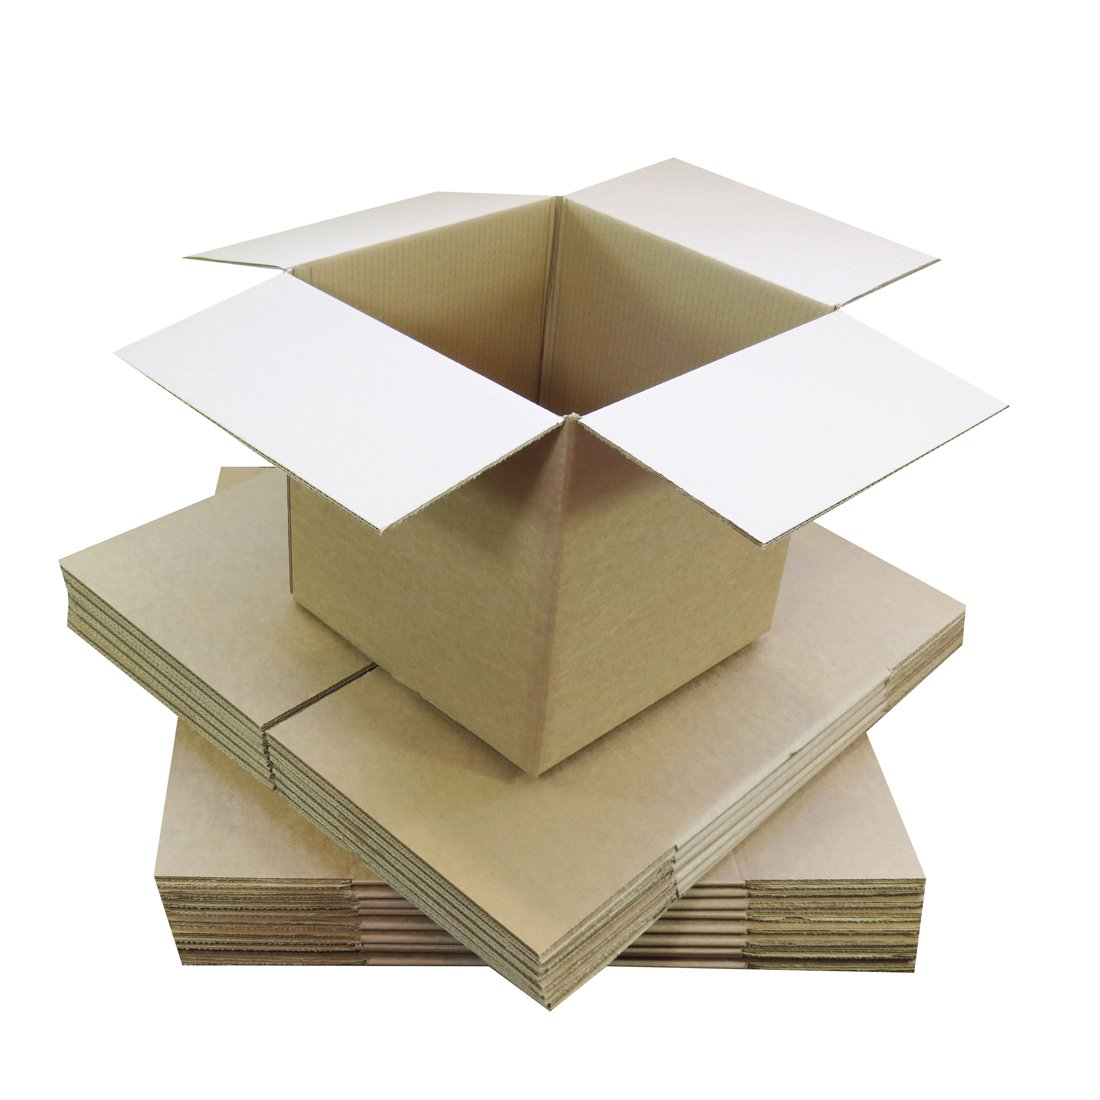 Triplast 229 x 152 x 152mm Small Single Wall 9x6x6 Shipping Mailing Postal Gift Cuboid Cardboard Boxes Pack of 50